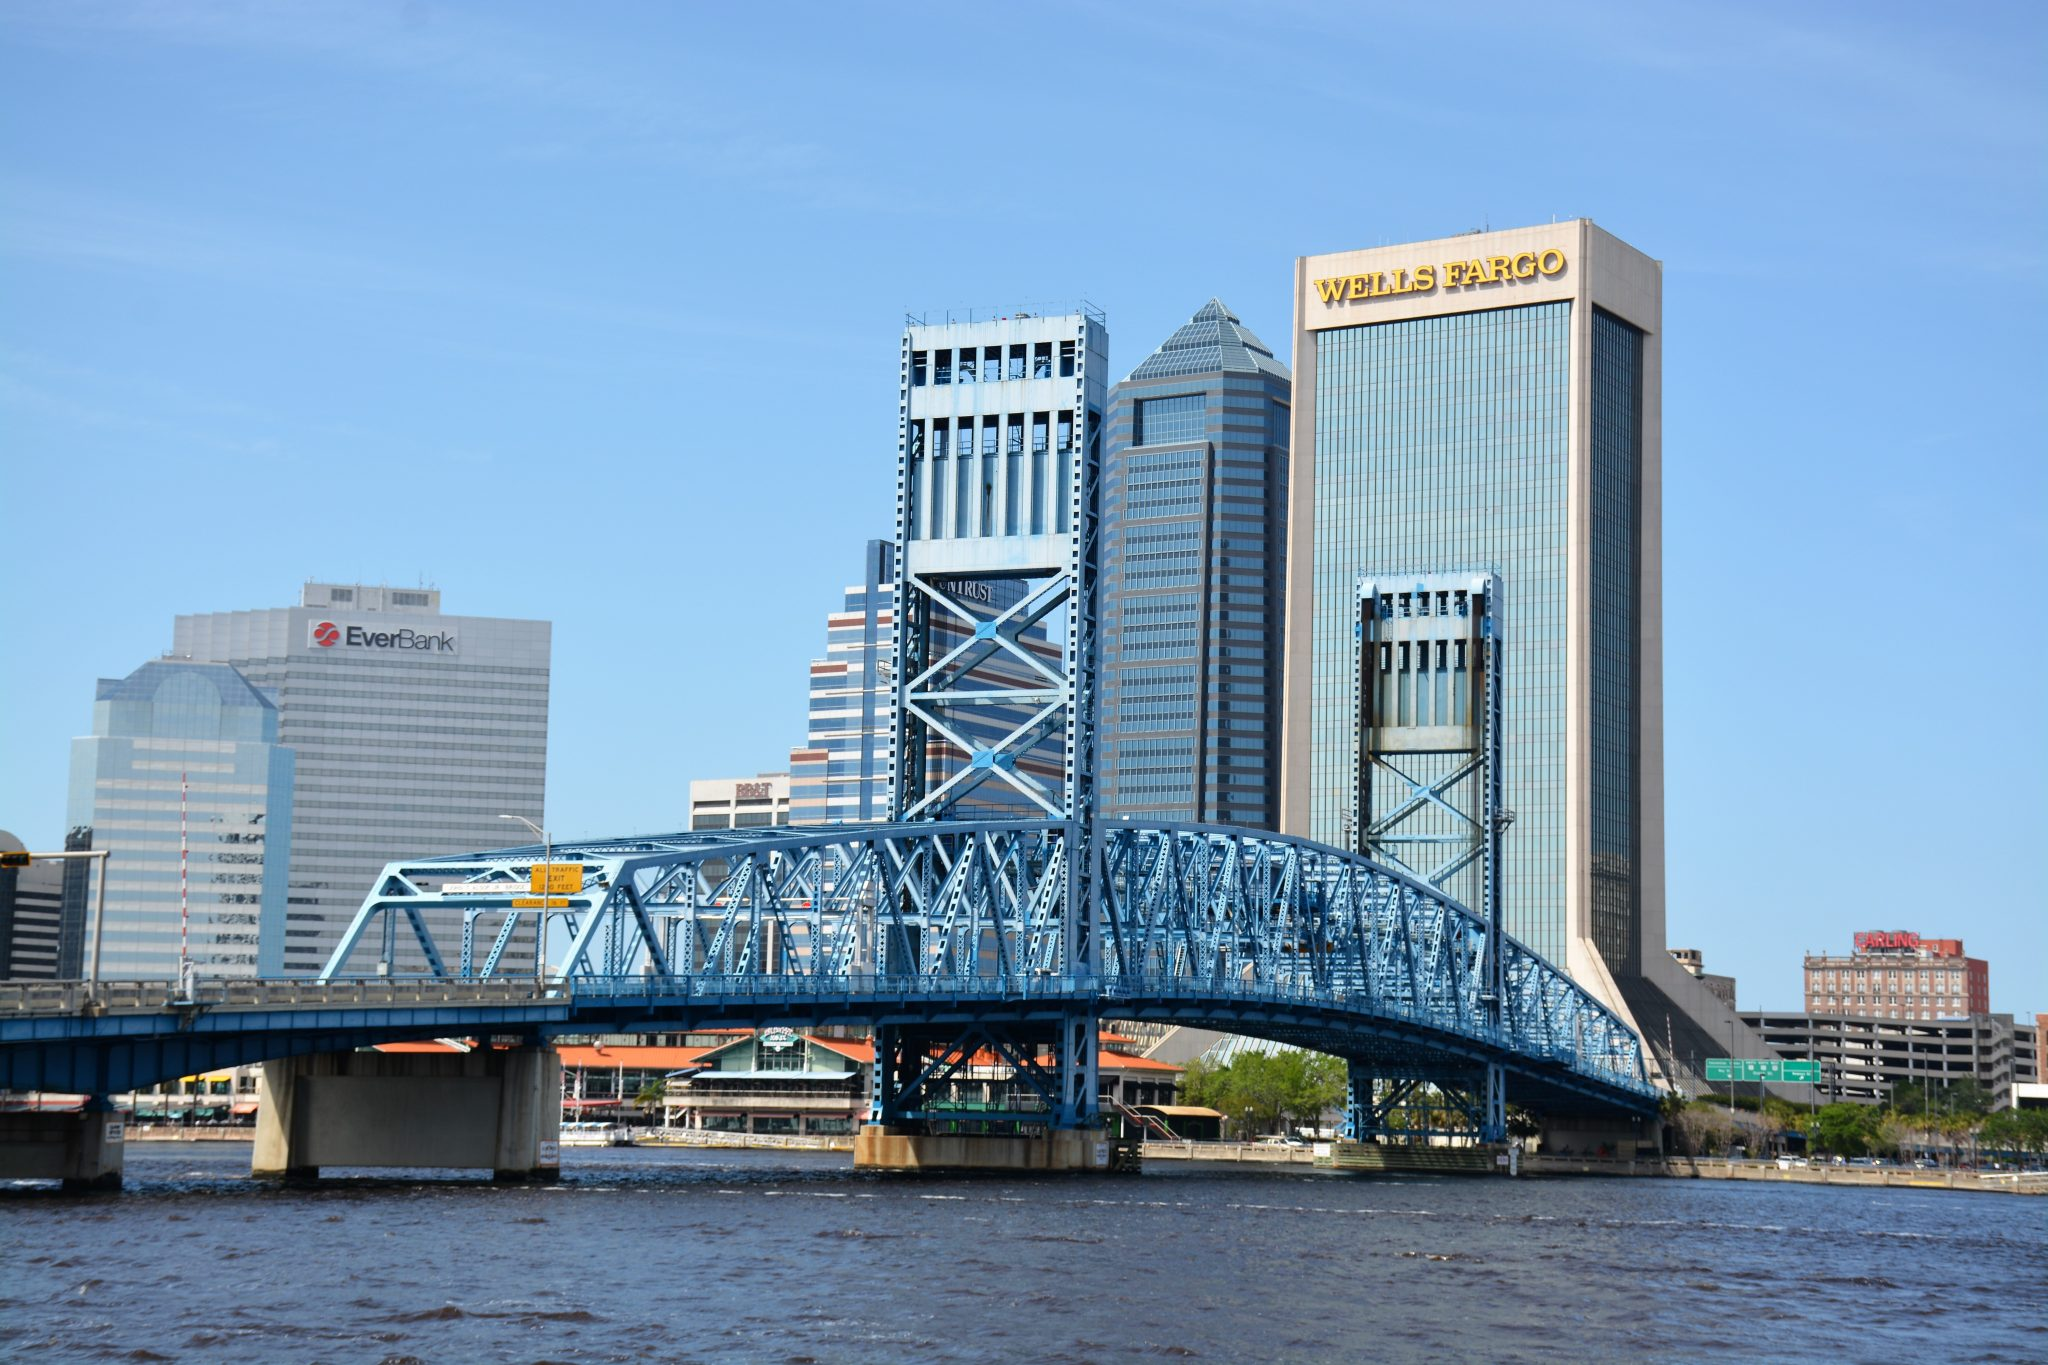 4 Ridiculous Myths that Scare People Away from Jacksonville